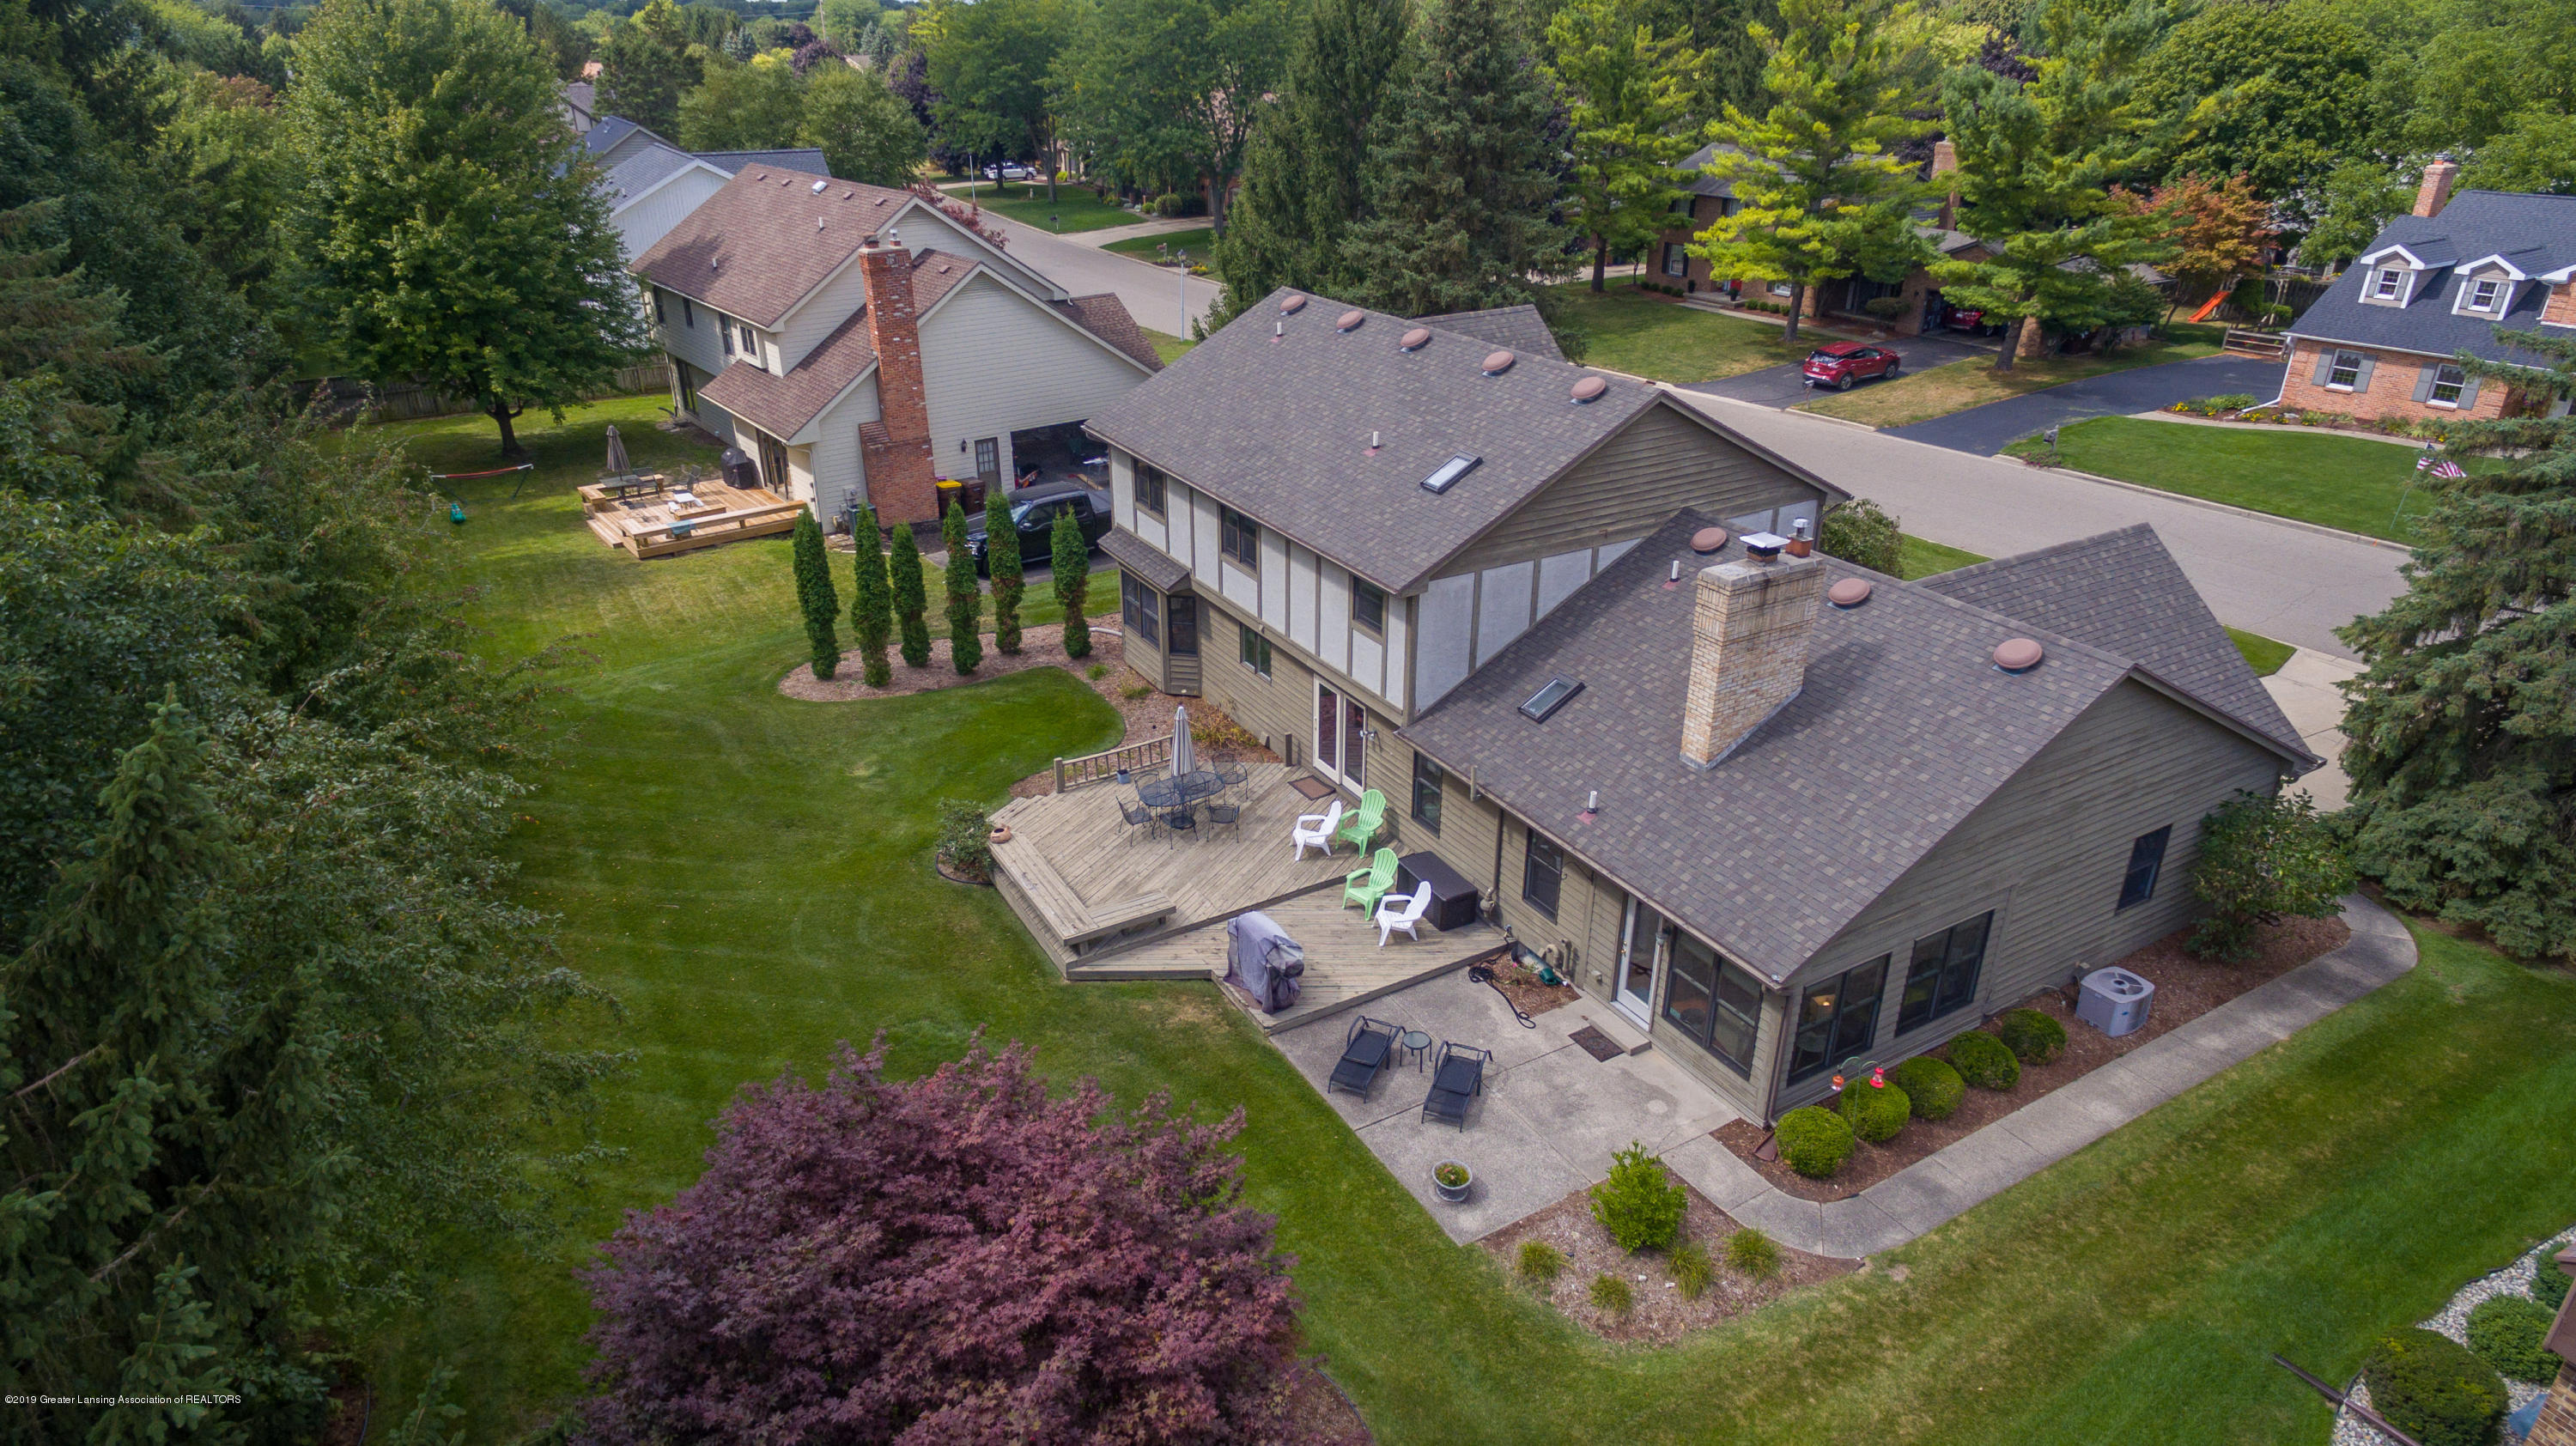 2133 Woodfield Rd - Aerial View - 54